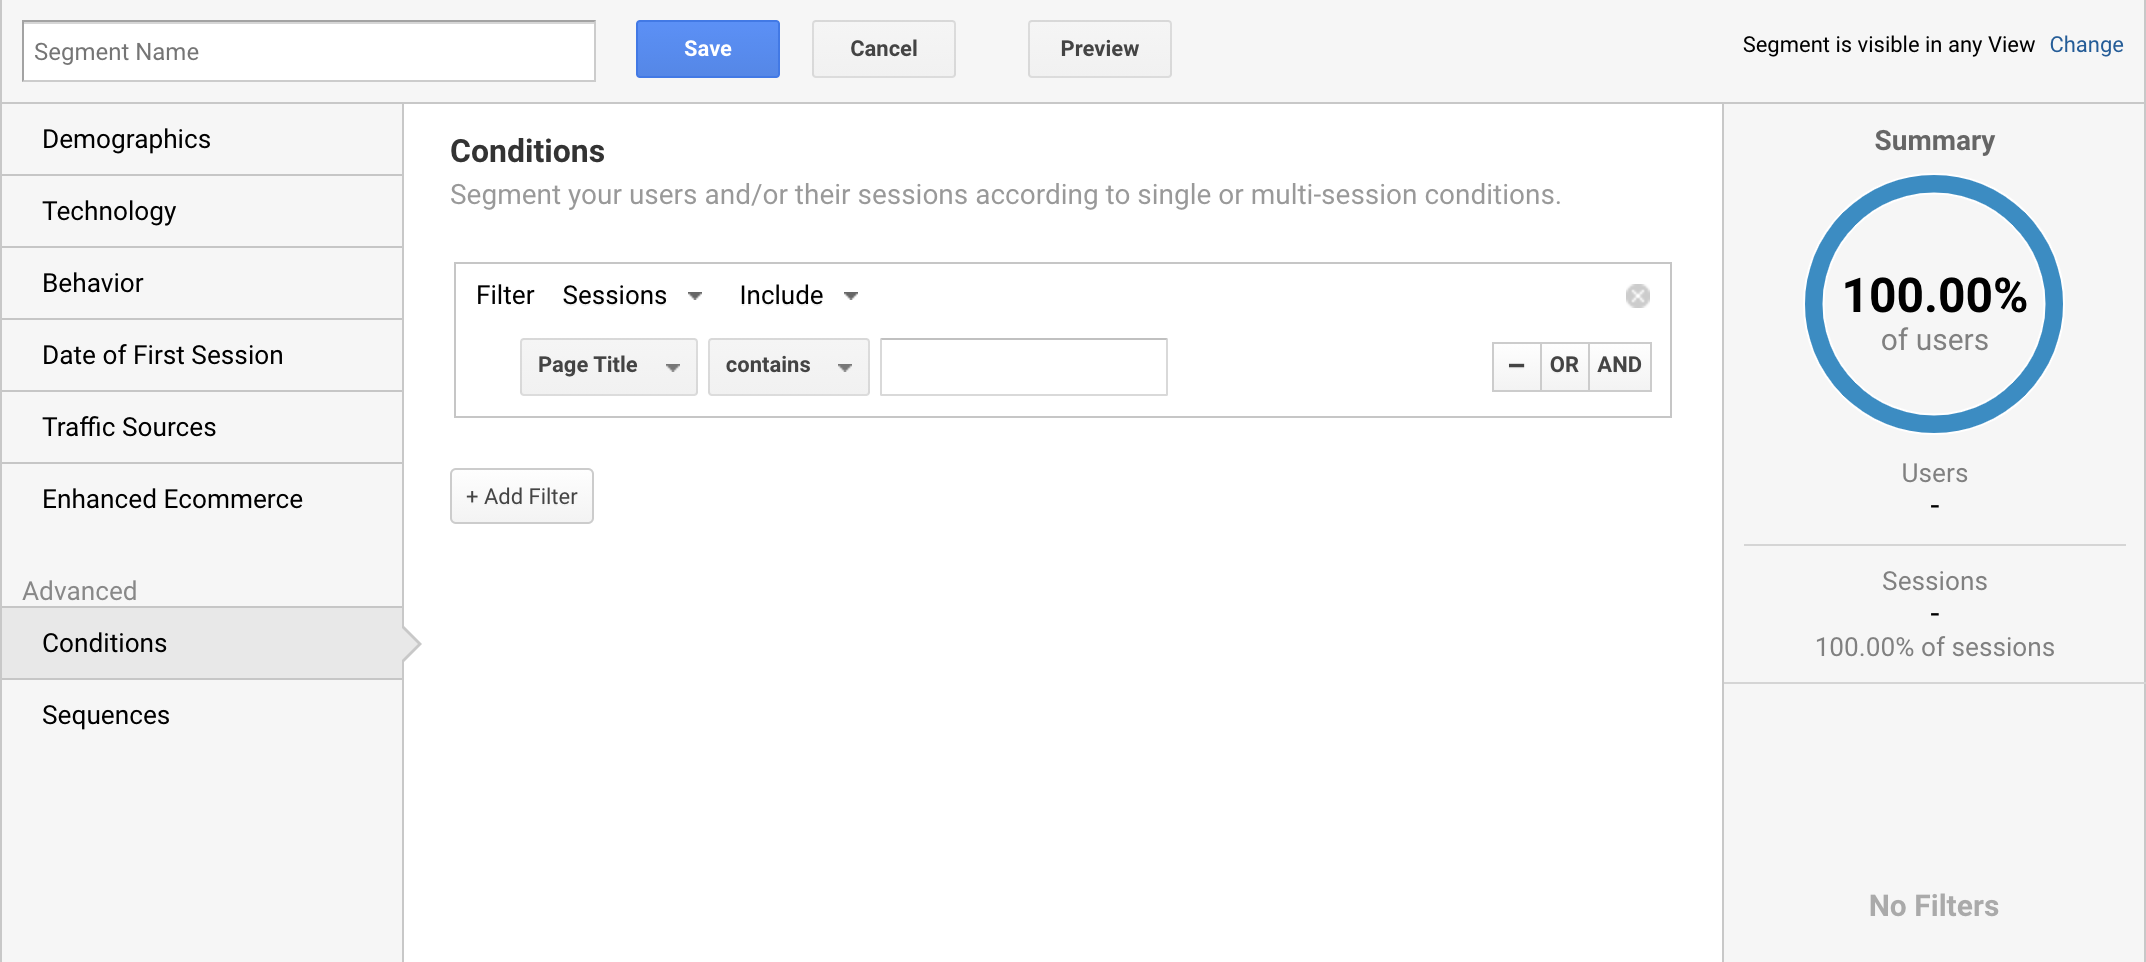 Adding a new segment on Google Analytics for visited Page Title.